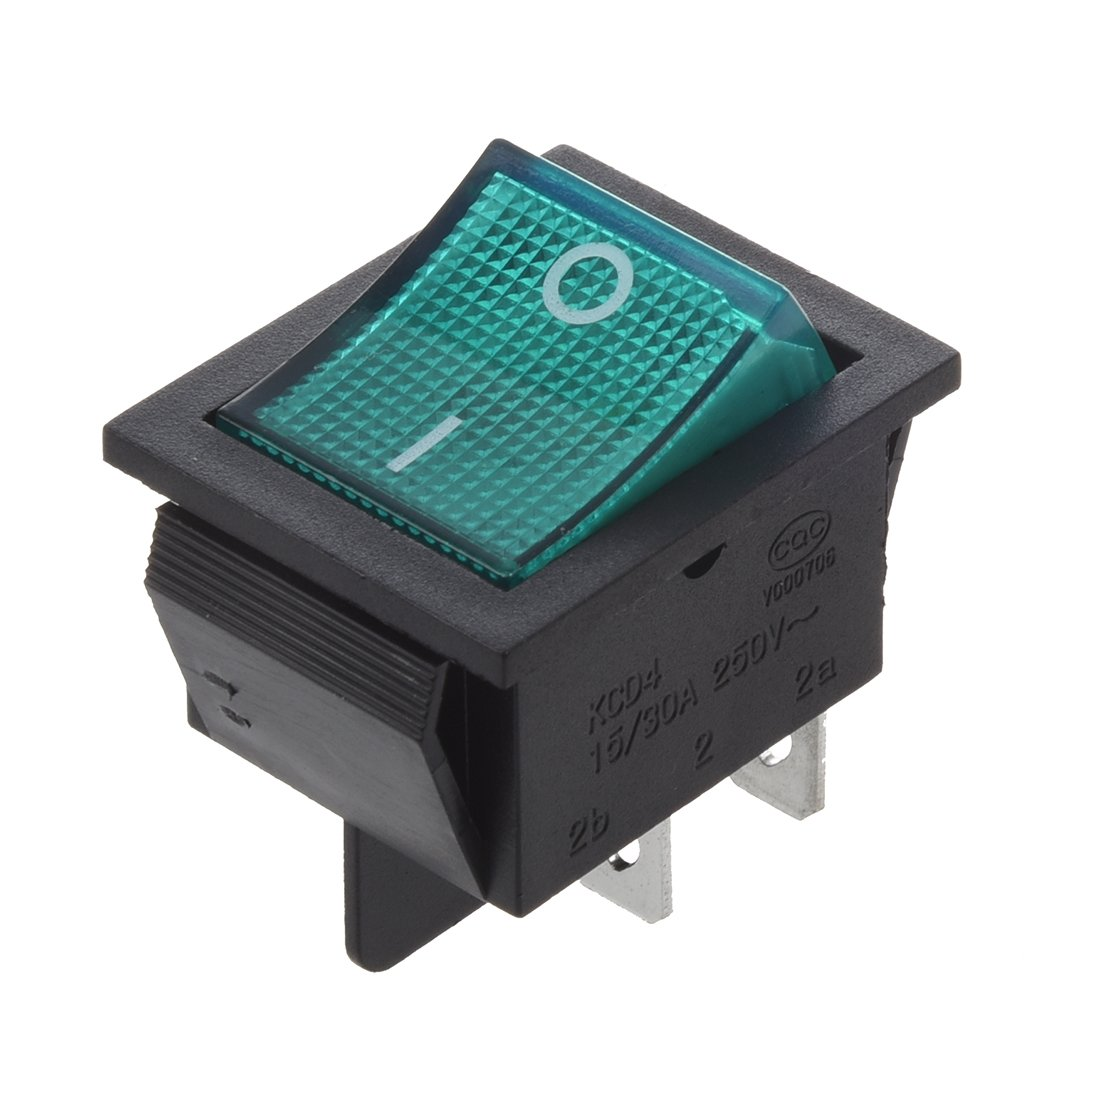 Interruttore a bilico TOOGOO 4 Pin DPST ON // OFF Interruttore a bilico 15A 30A 250V AC R